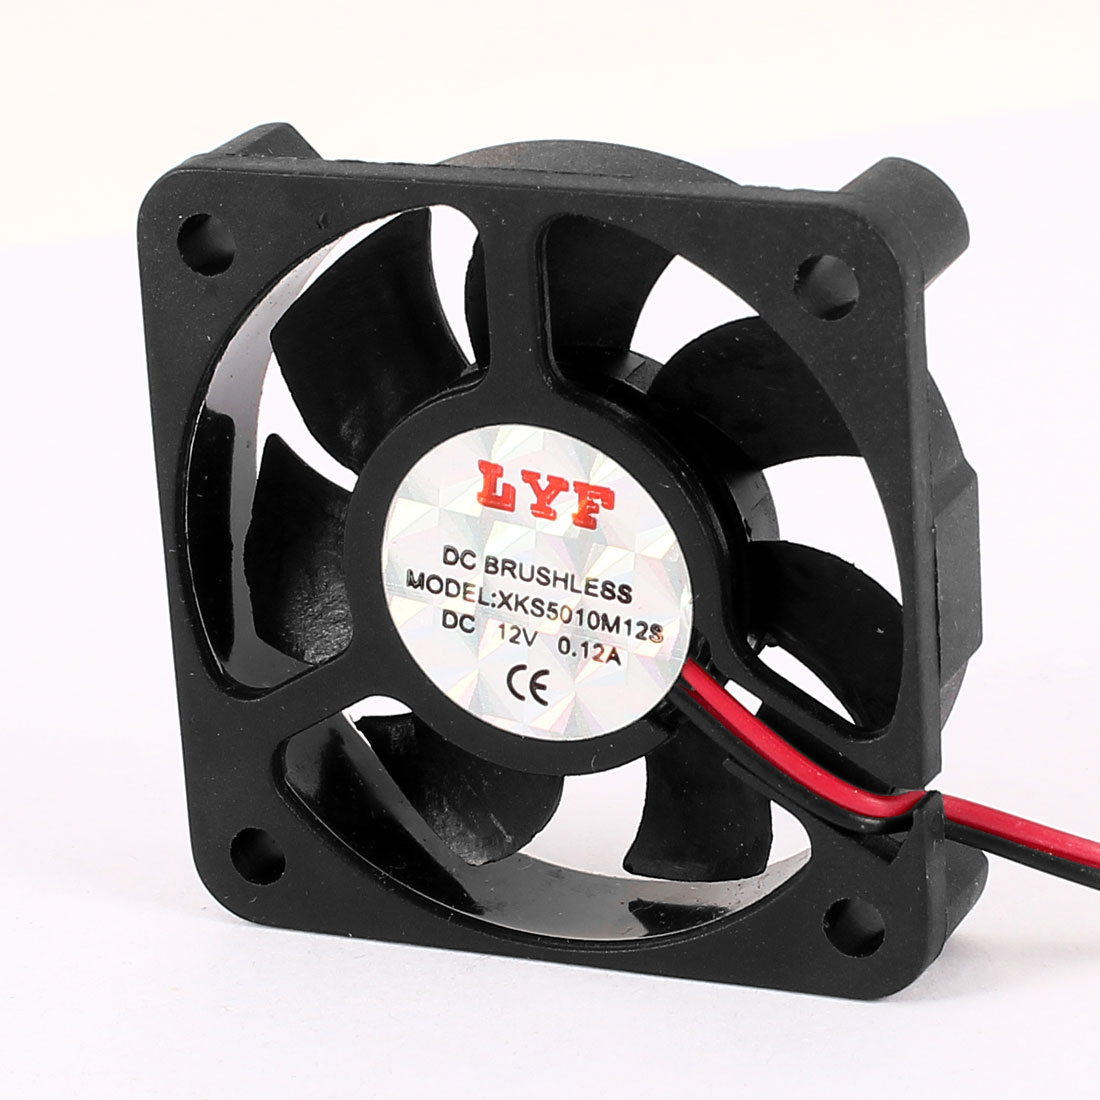 50x50x10mm 5010S 2500RPM Sleeve Bearing Brushless Cooling Fan DC 12V 0.12A